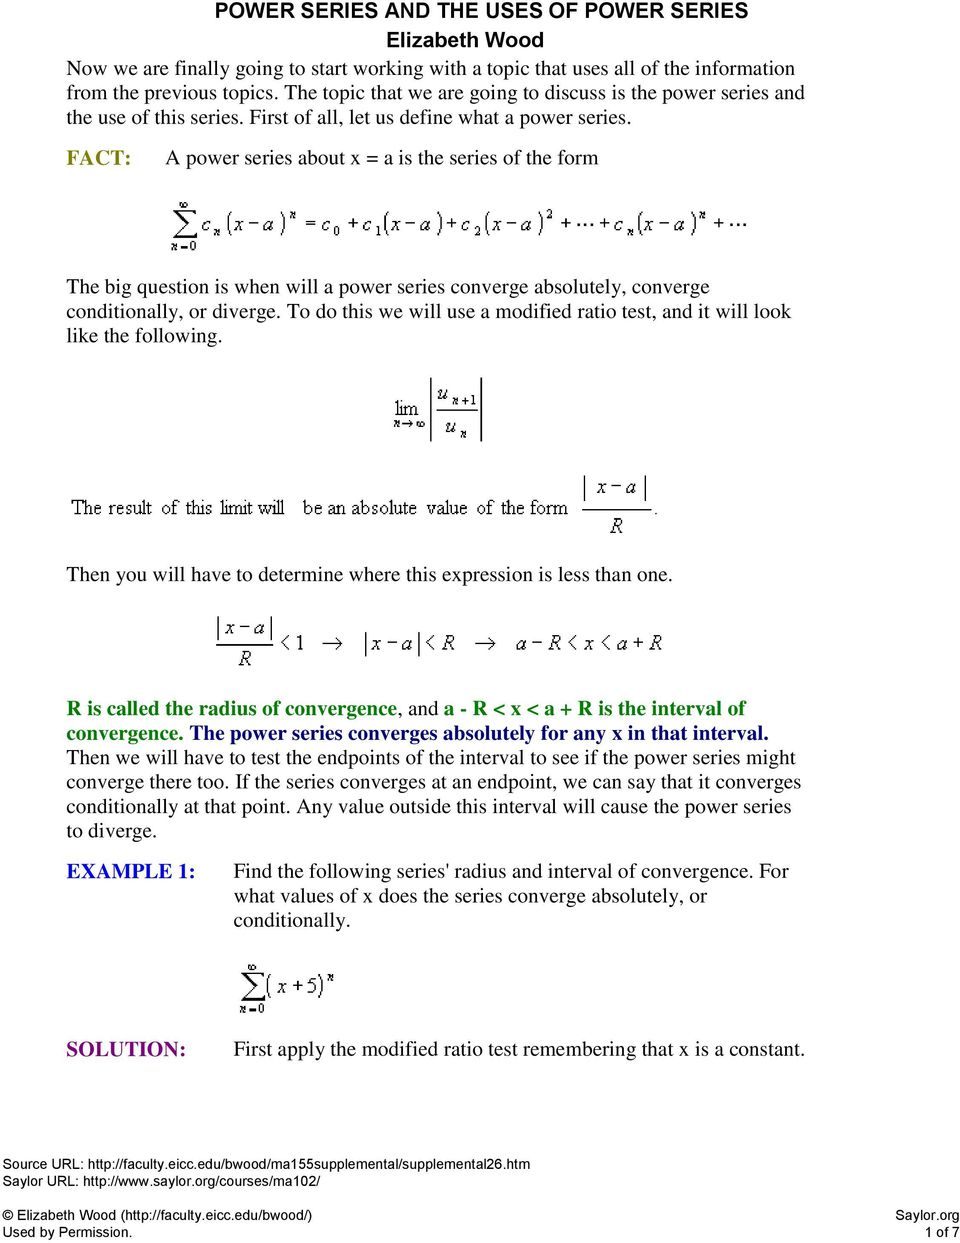 A power series about x = a is the series of the form - PDF